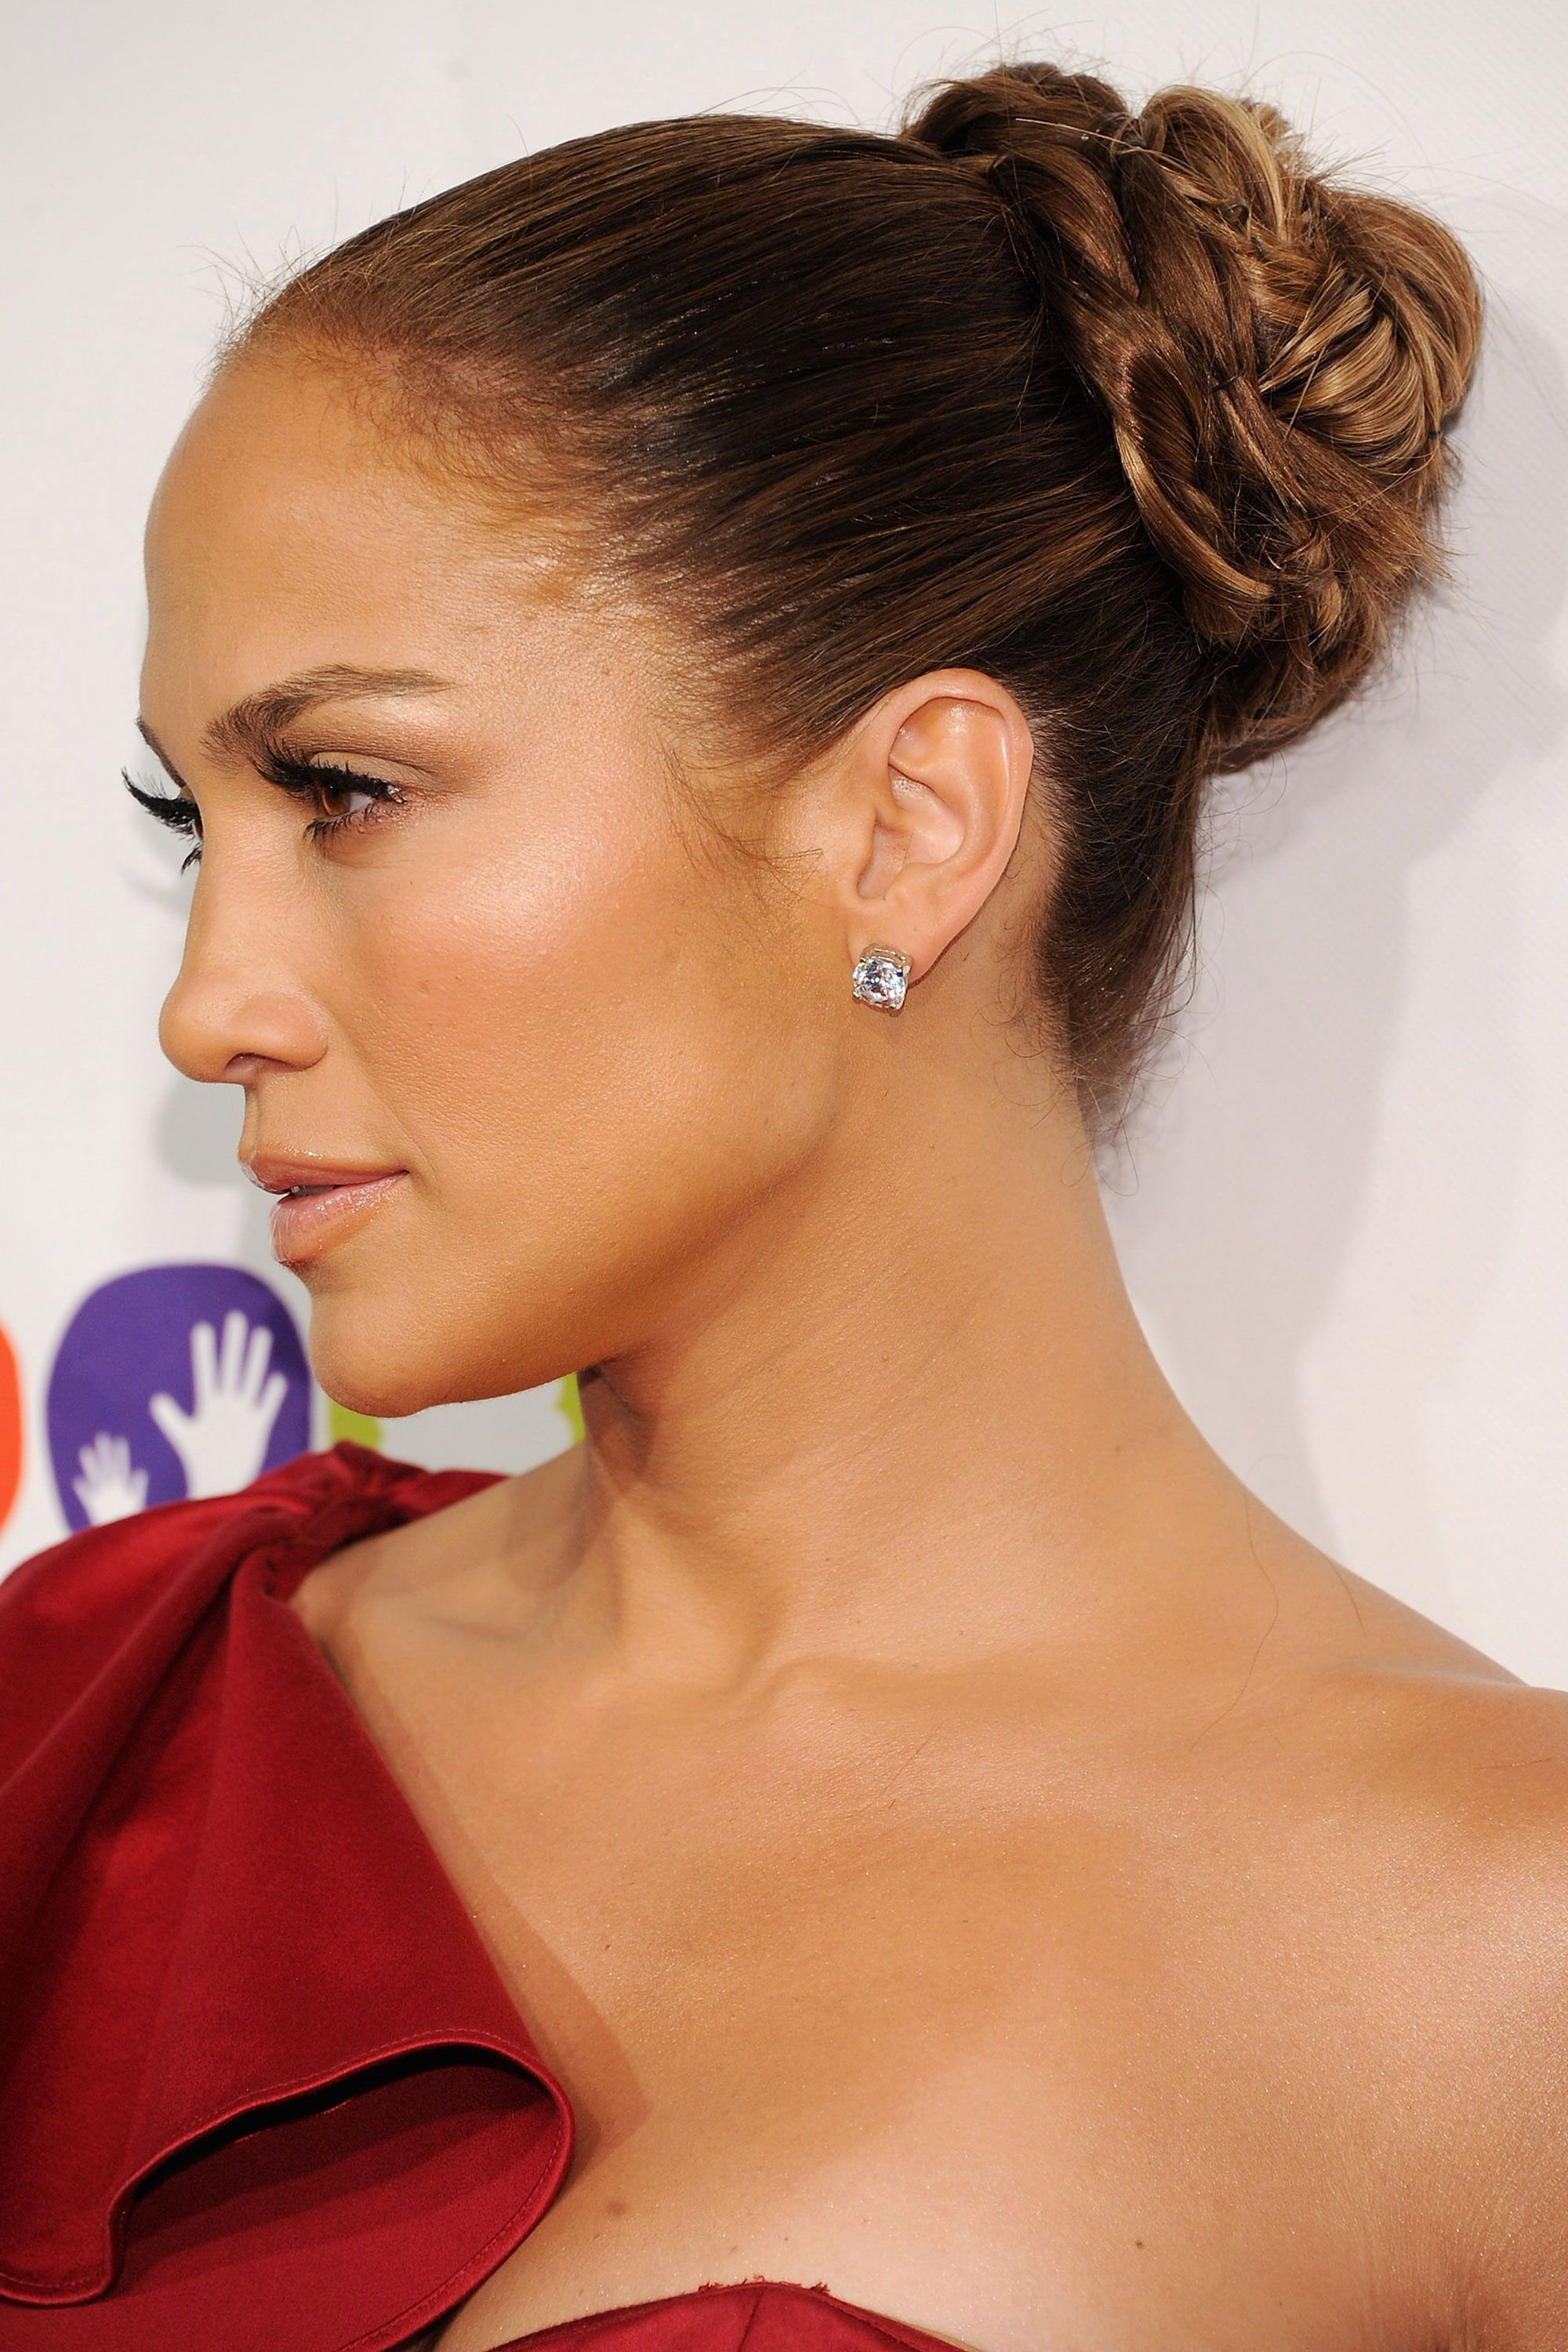 "<p>If you've ever braided the end of your ponytail before, you can easily recreate Jennifer Lopez's same look with one extra step, according to <a href=""https://www.joico.com/"" target=""_blank"">Joico</a>'s celebrity hairstylist, <a href=""https://www.instagram.com/paulnortonhair/?hl=en"">Paul Norton</a>. Start by gathering your hair into a high pony, braiding it, and securing the end with a hair tie. Then, wrap the lengthy braid around the base of your ponytail, anchoring it down with bobby pins. Keep the braid tight and polished or give it more texture by gently tugging the braid apart before wrapping it up and around the pony. </p><p><strong data-redactor-tag=""strong"" data-verified=""redactor"">RELATED: <a href=""http://www.redbookmag.com/beauty/hair/advice/g2449/braided-hairstyle/"" target=""_blank"">53 Braided Hairstyles That Are Anything But Boring</a></strong><span class=""redactor-invisible-space""><strong data-redactor-tag=""strong"" data-verified=""redactor""><a href=""http://www.redbookmag.com/beauty/hair/advice/g2449/braided-hairstyle/""></a></strong></span><br></p>"